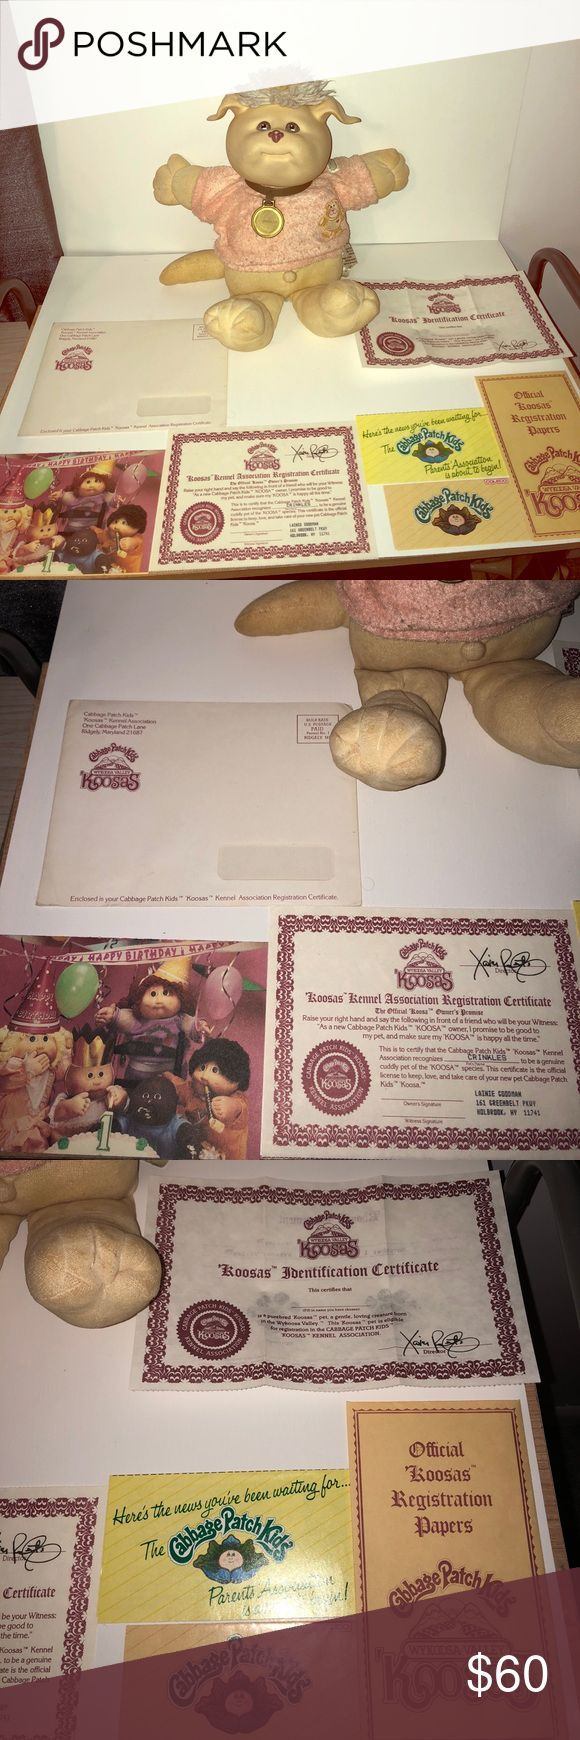 Authentic Cabbage Patch Kids Koosas 80s Doll 100% Authentic Cabbage Patch Doll with original box. Koosas comes with original birth certificate, adoption certificate, Cabbage patch card & envelope. Includes cabbage patch clothes too! Box has wear but is in great shape! Cabbage Patch Kids Other